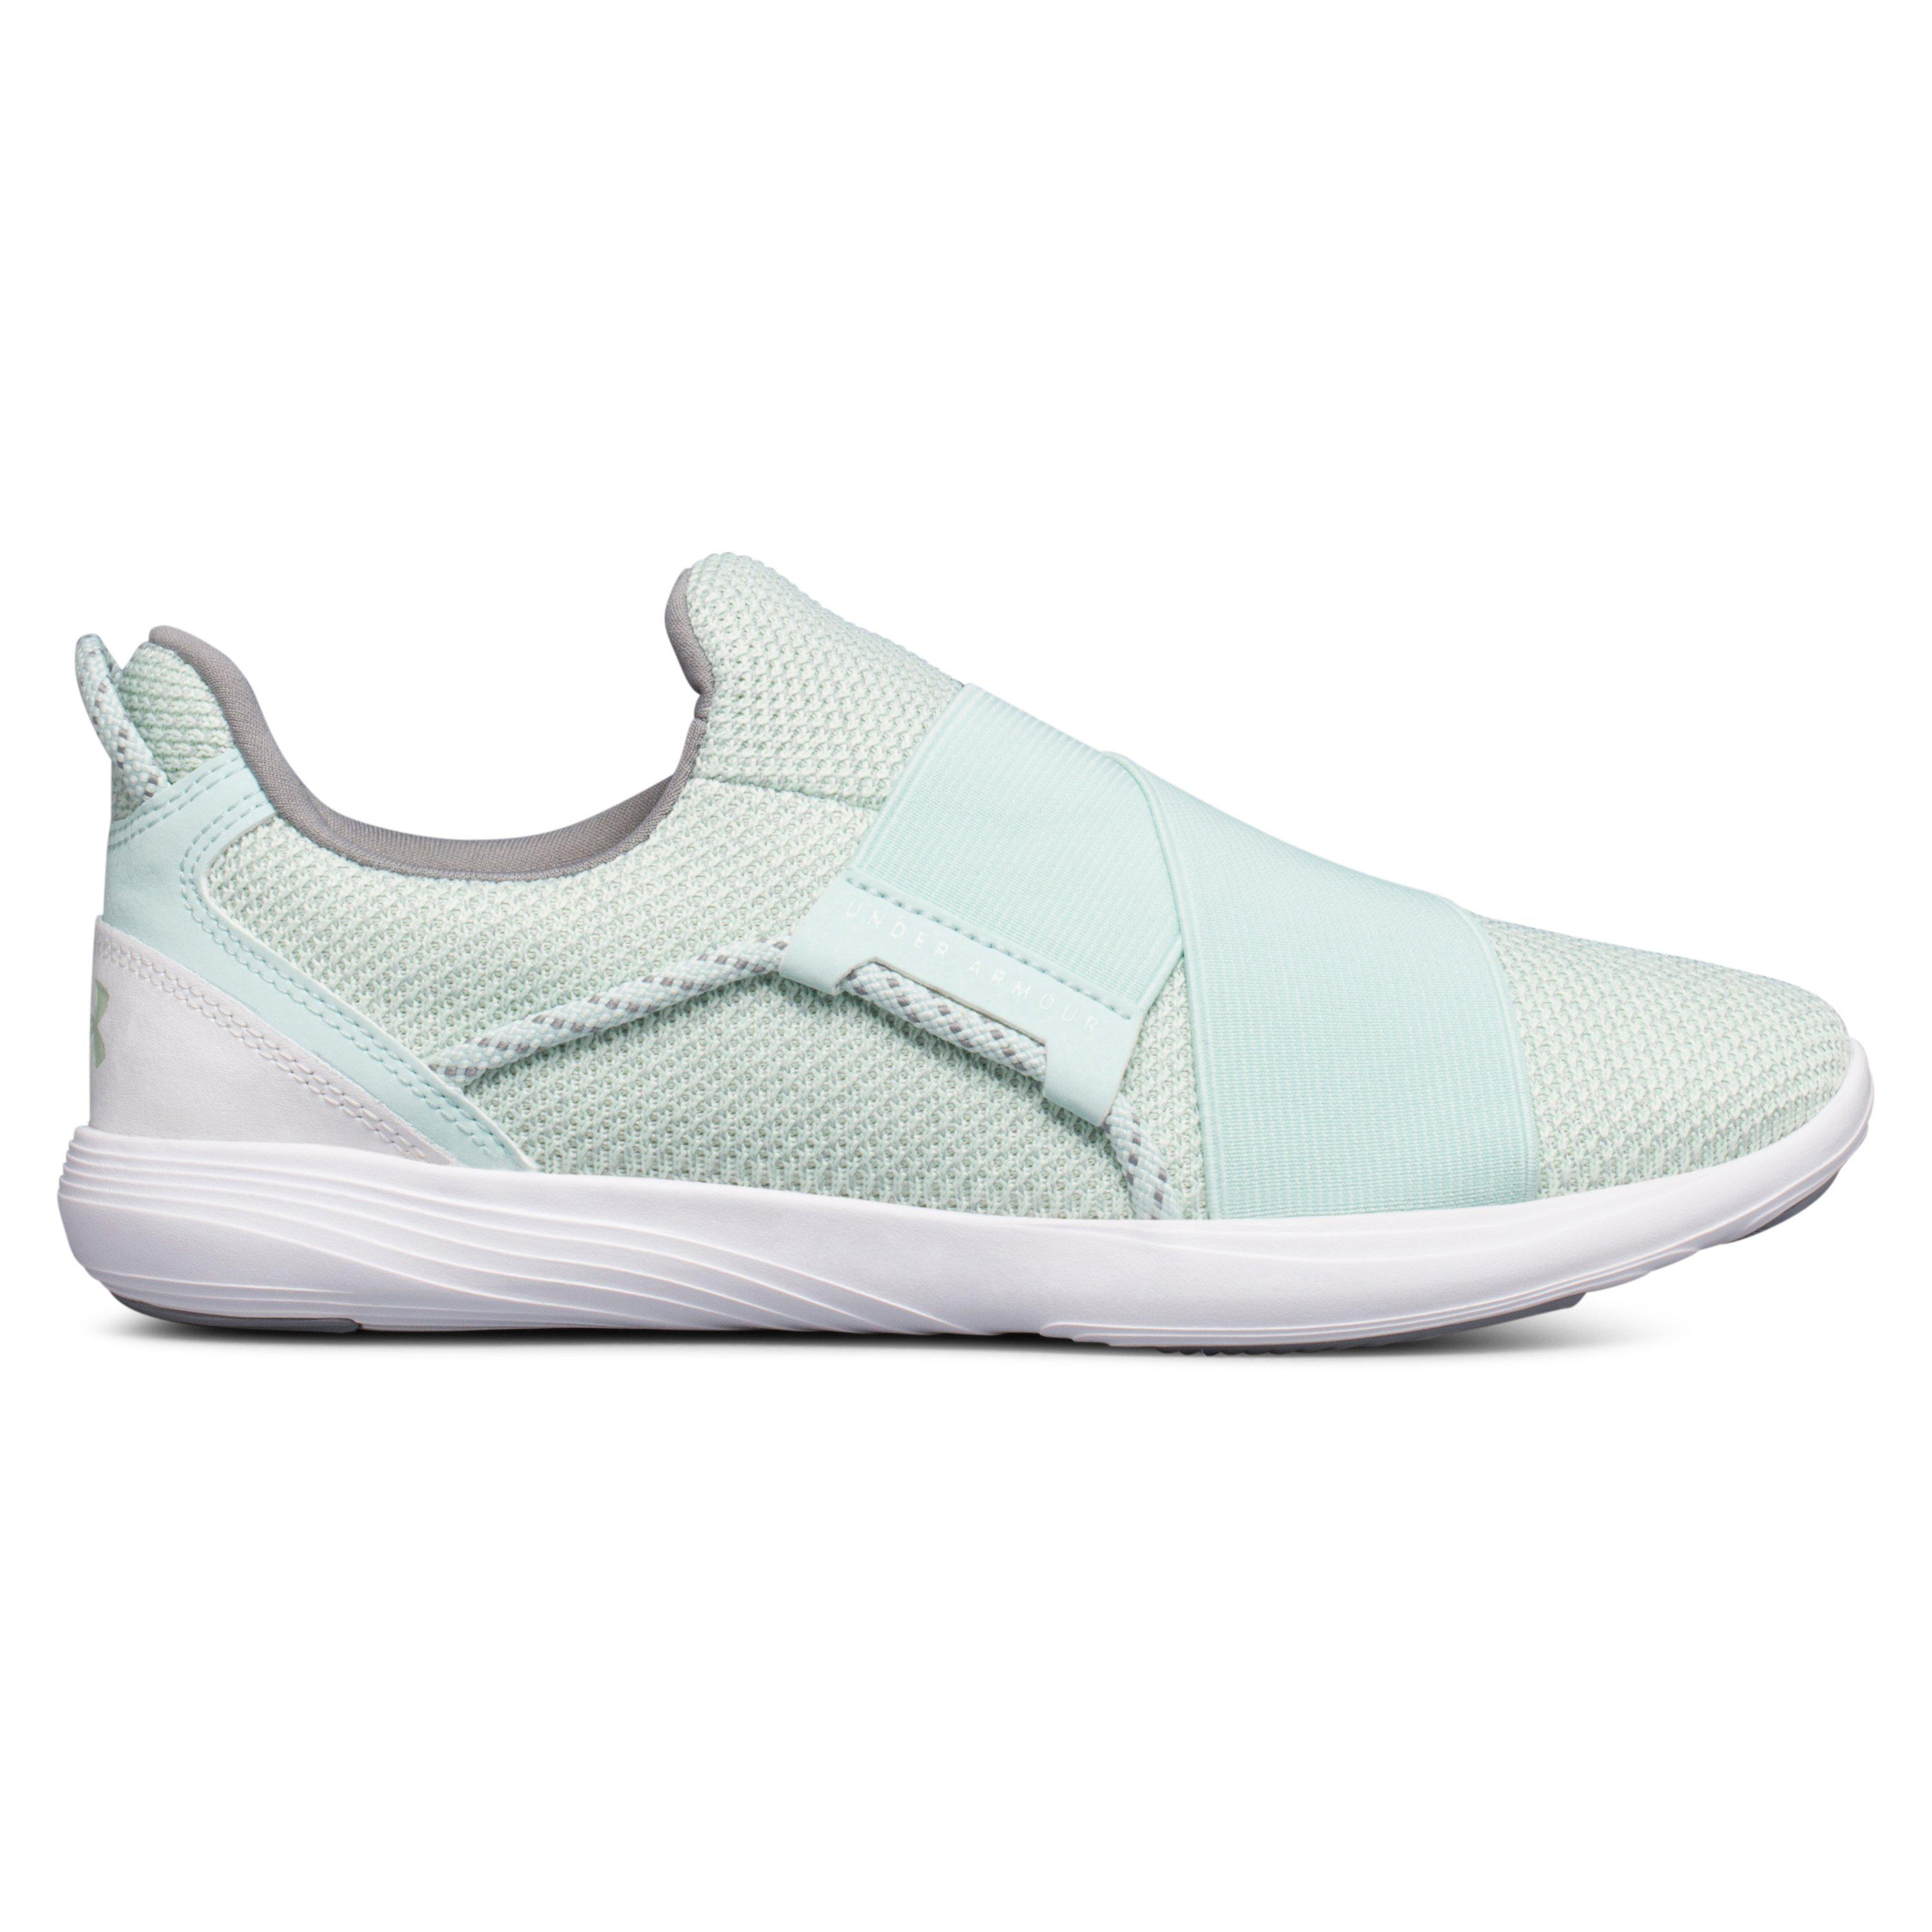 3433a376c2a Under Armour Women s Ua Precision X Training Shoes in White - Lyst